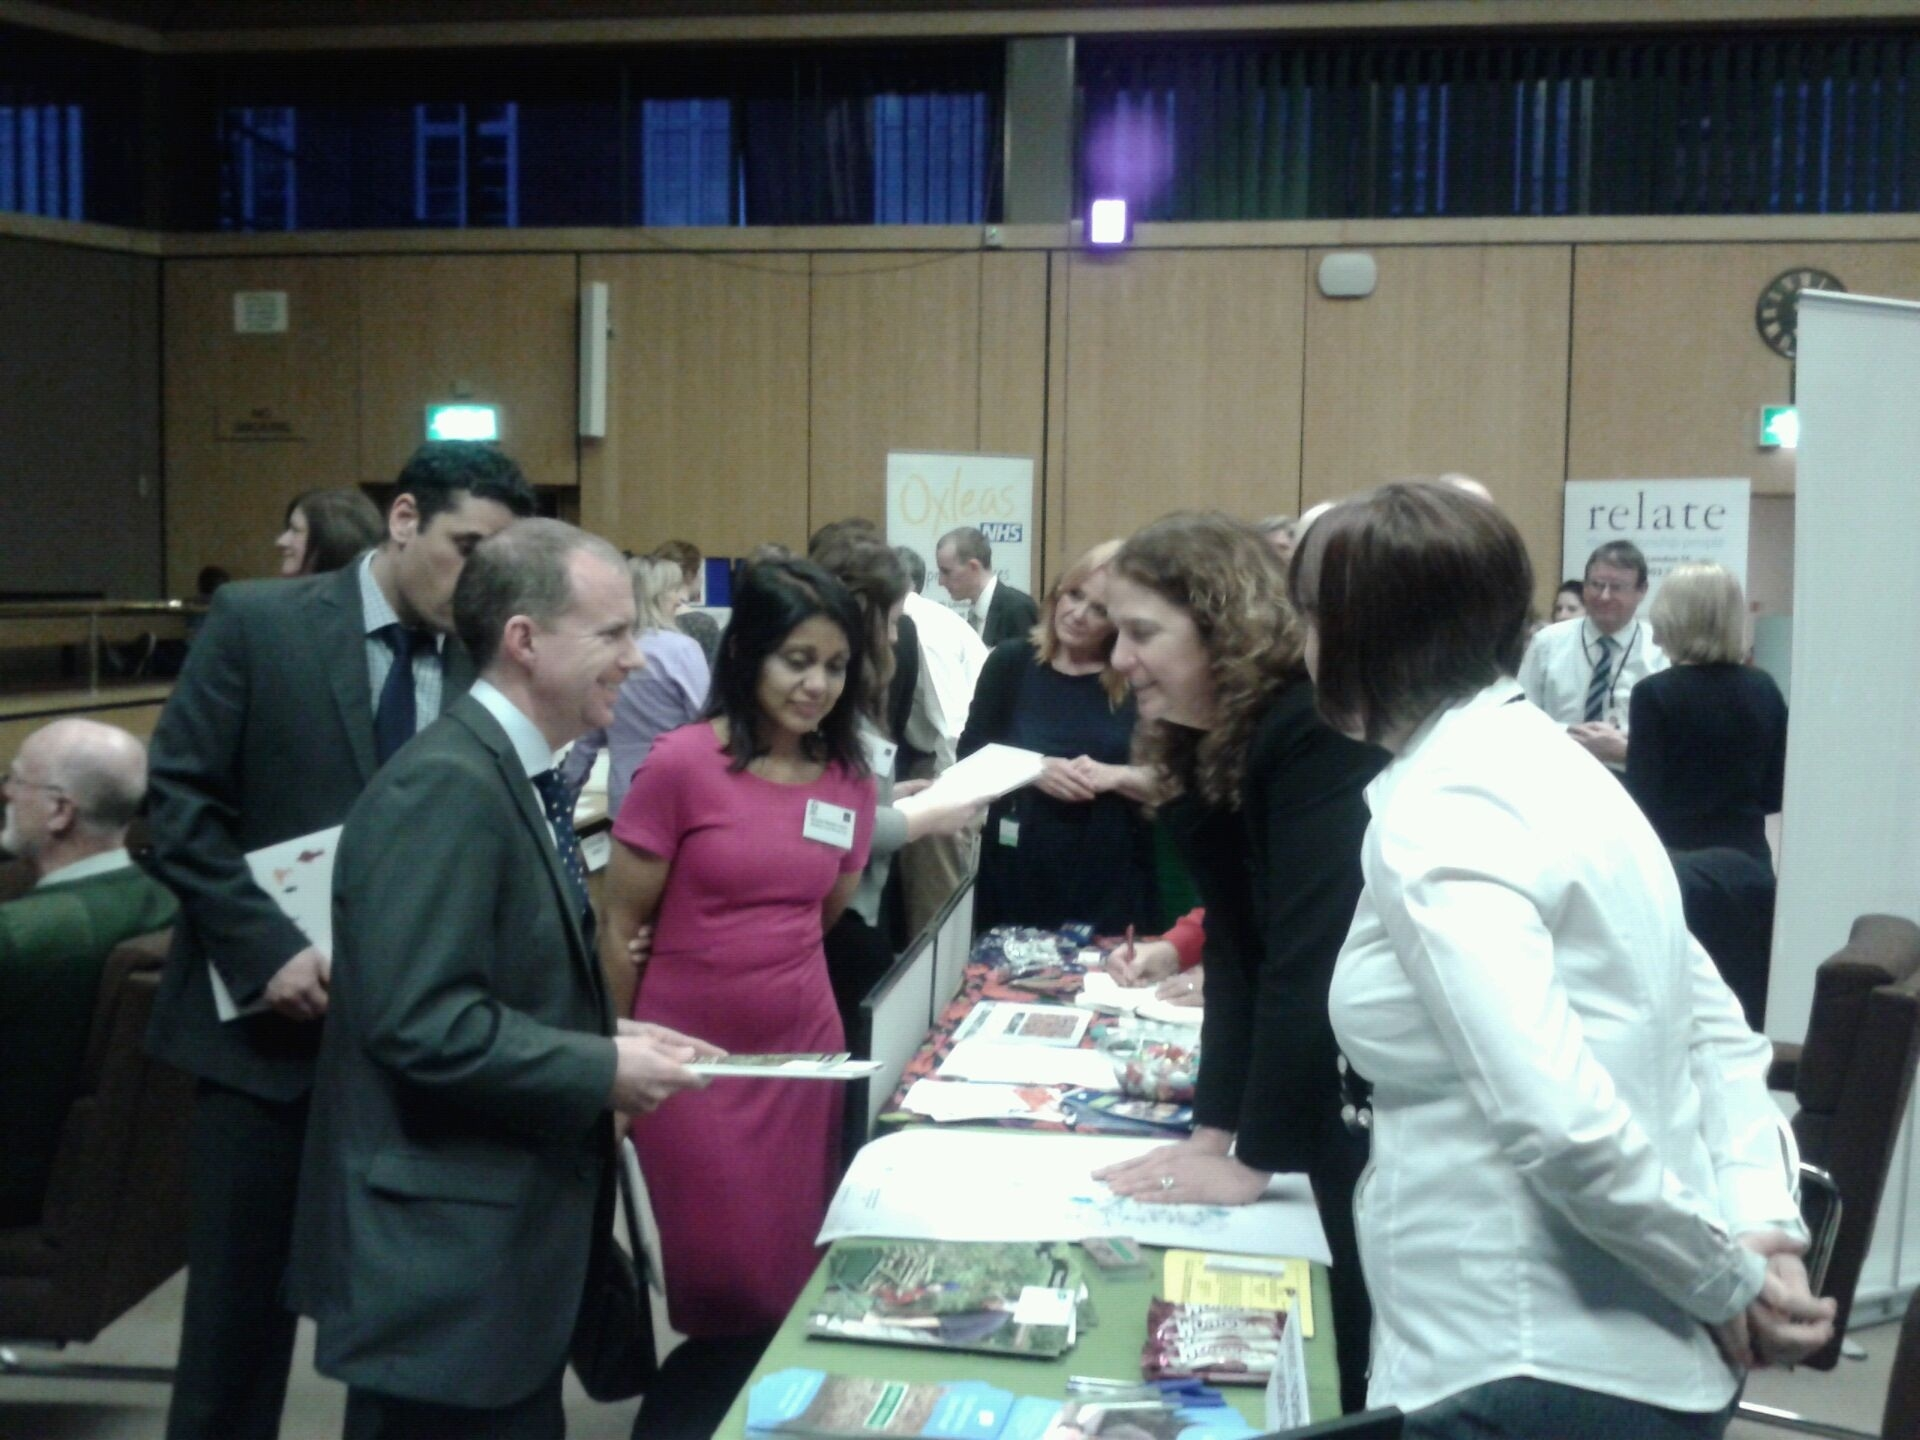 Bromley business leaders meet community groups to support borough